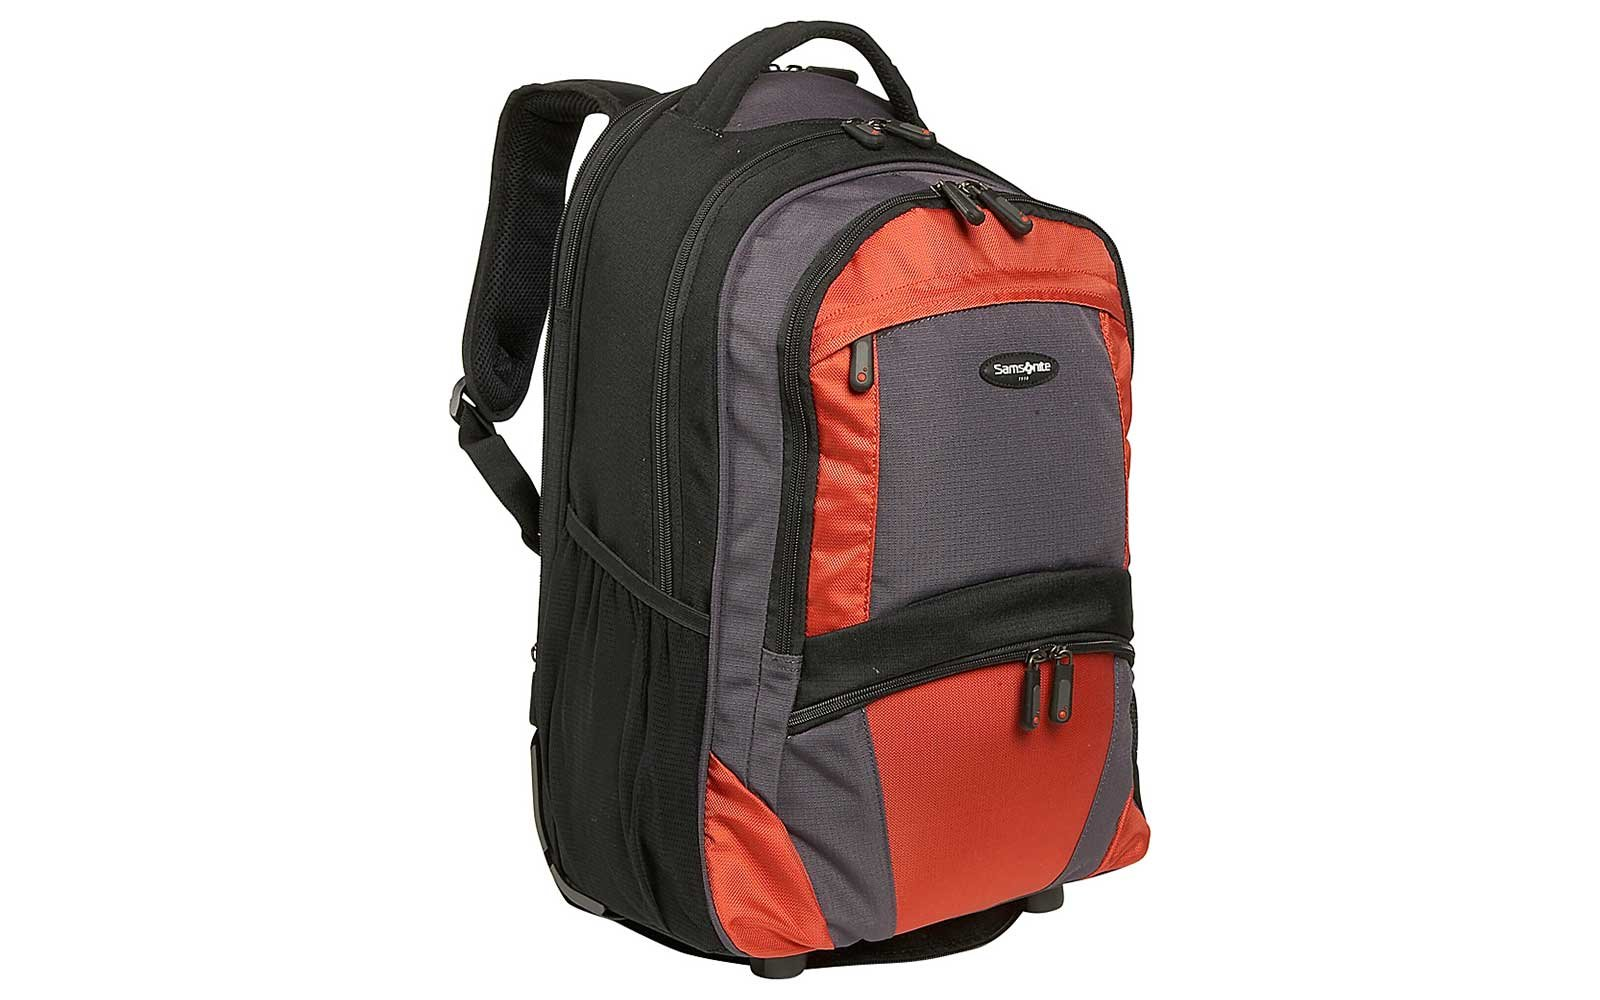 Samsonite Medium Wheeled Backpack